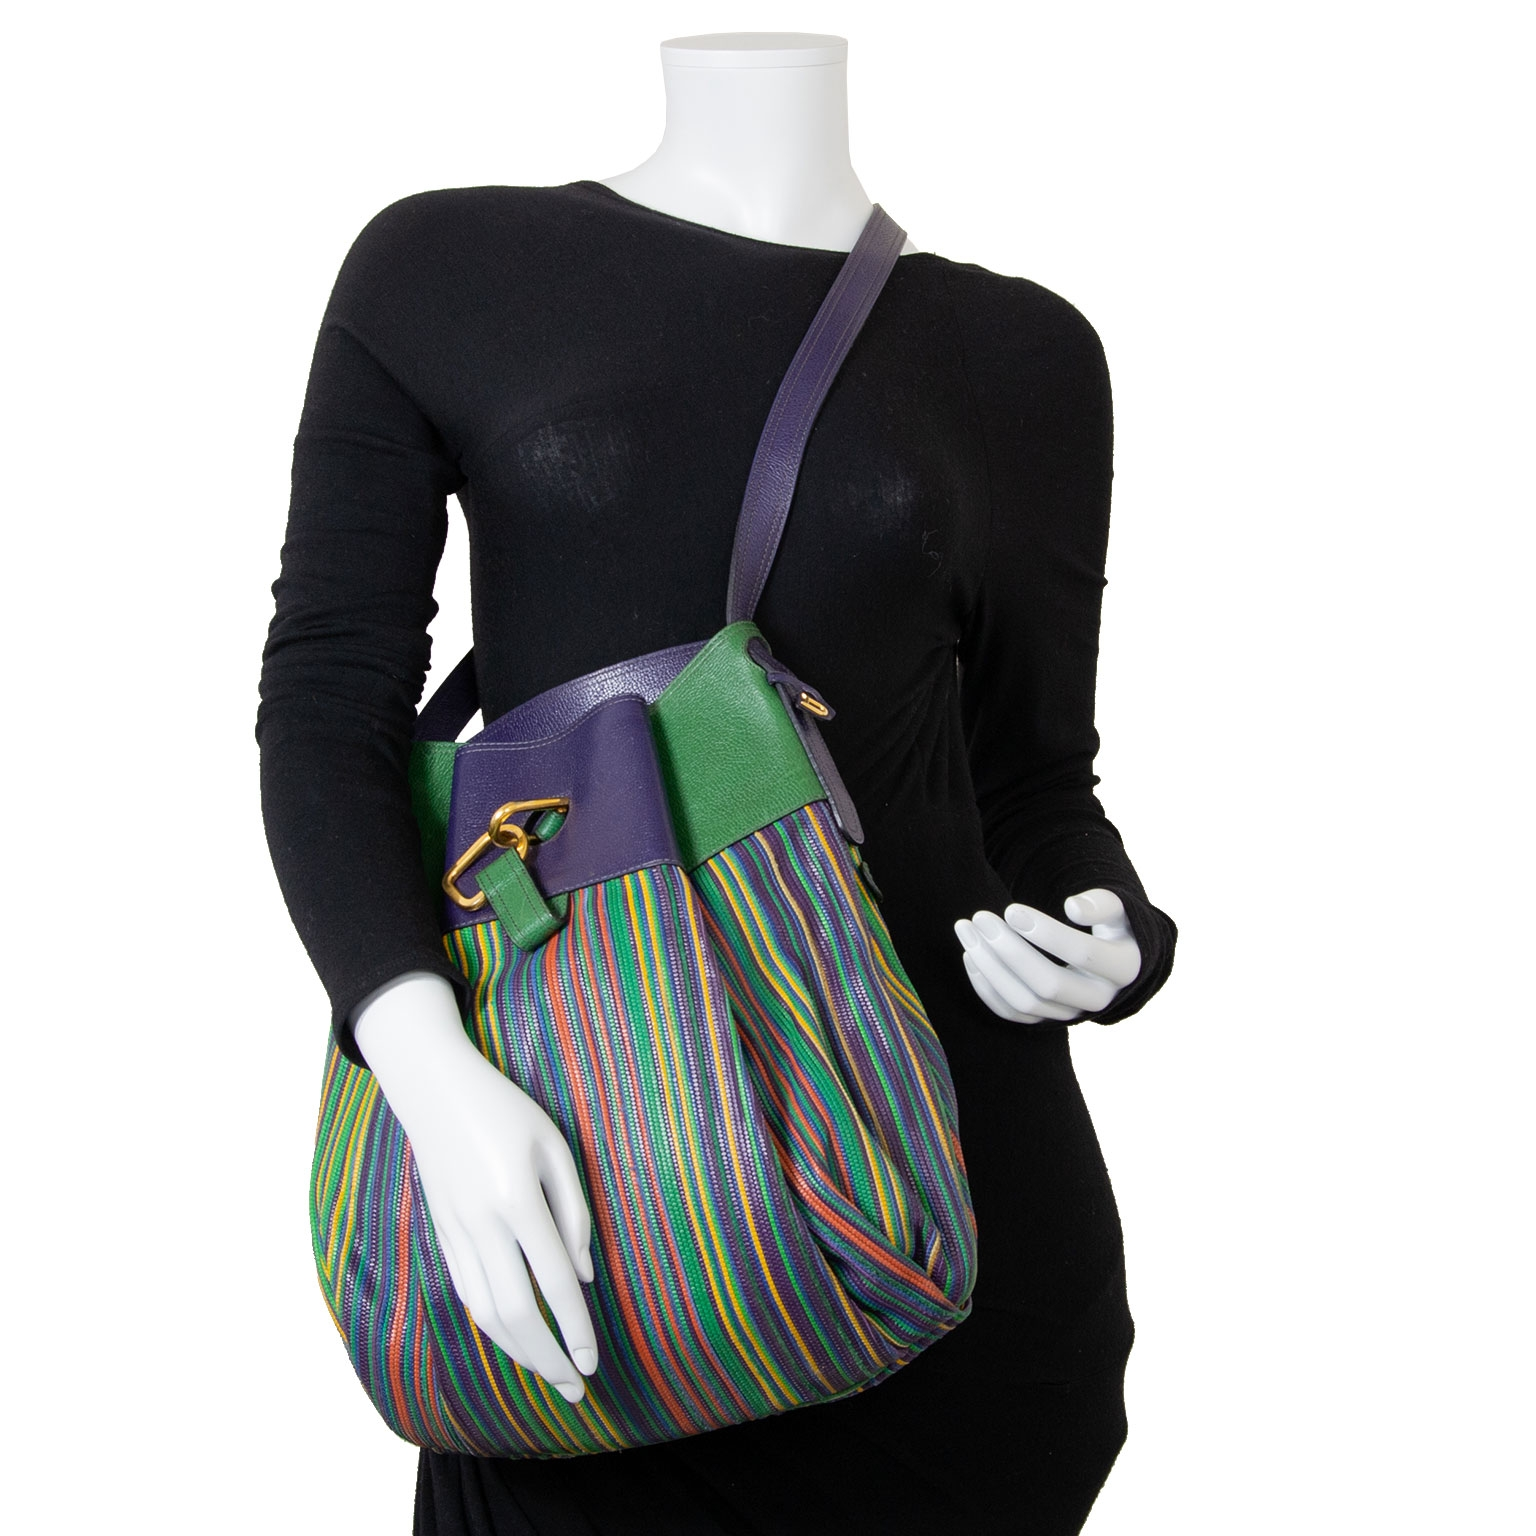 delvaux multicolor toile de cuir faust bag now for sale at labellov vintage fashion webshop belgium